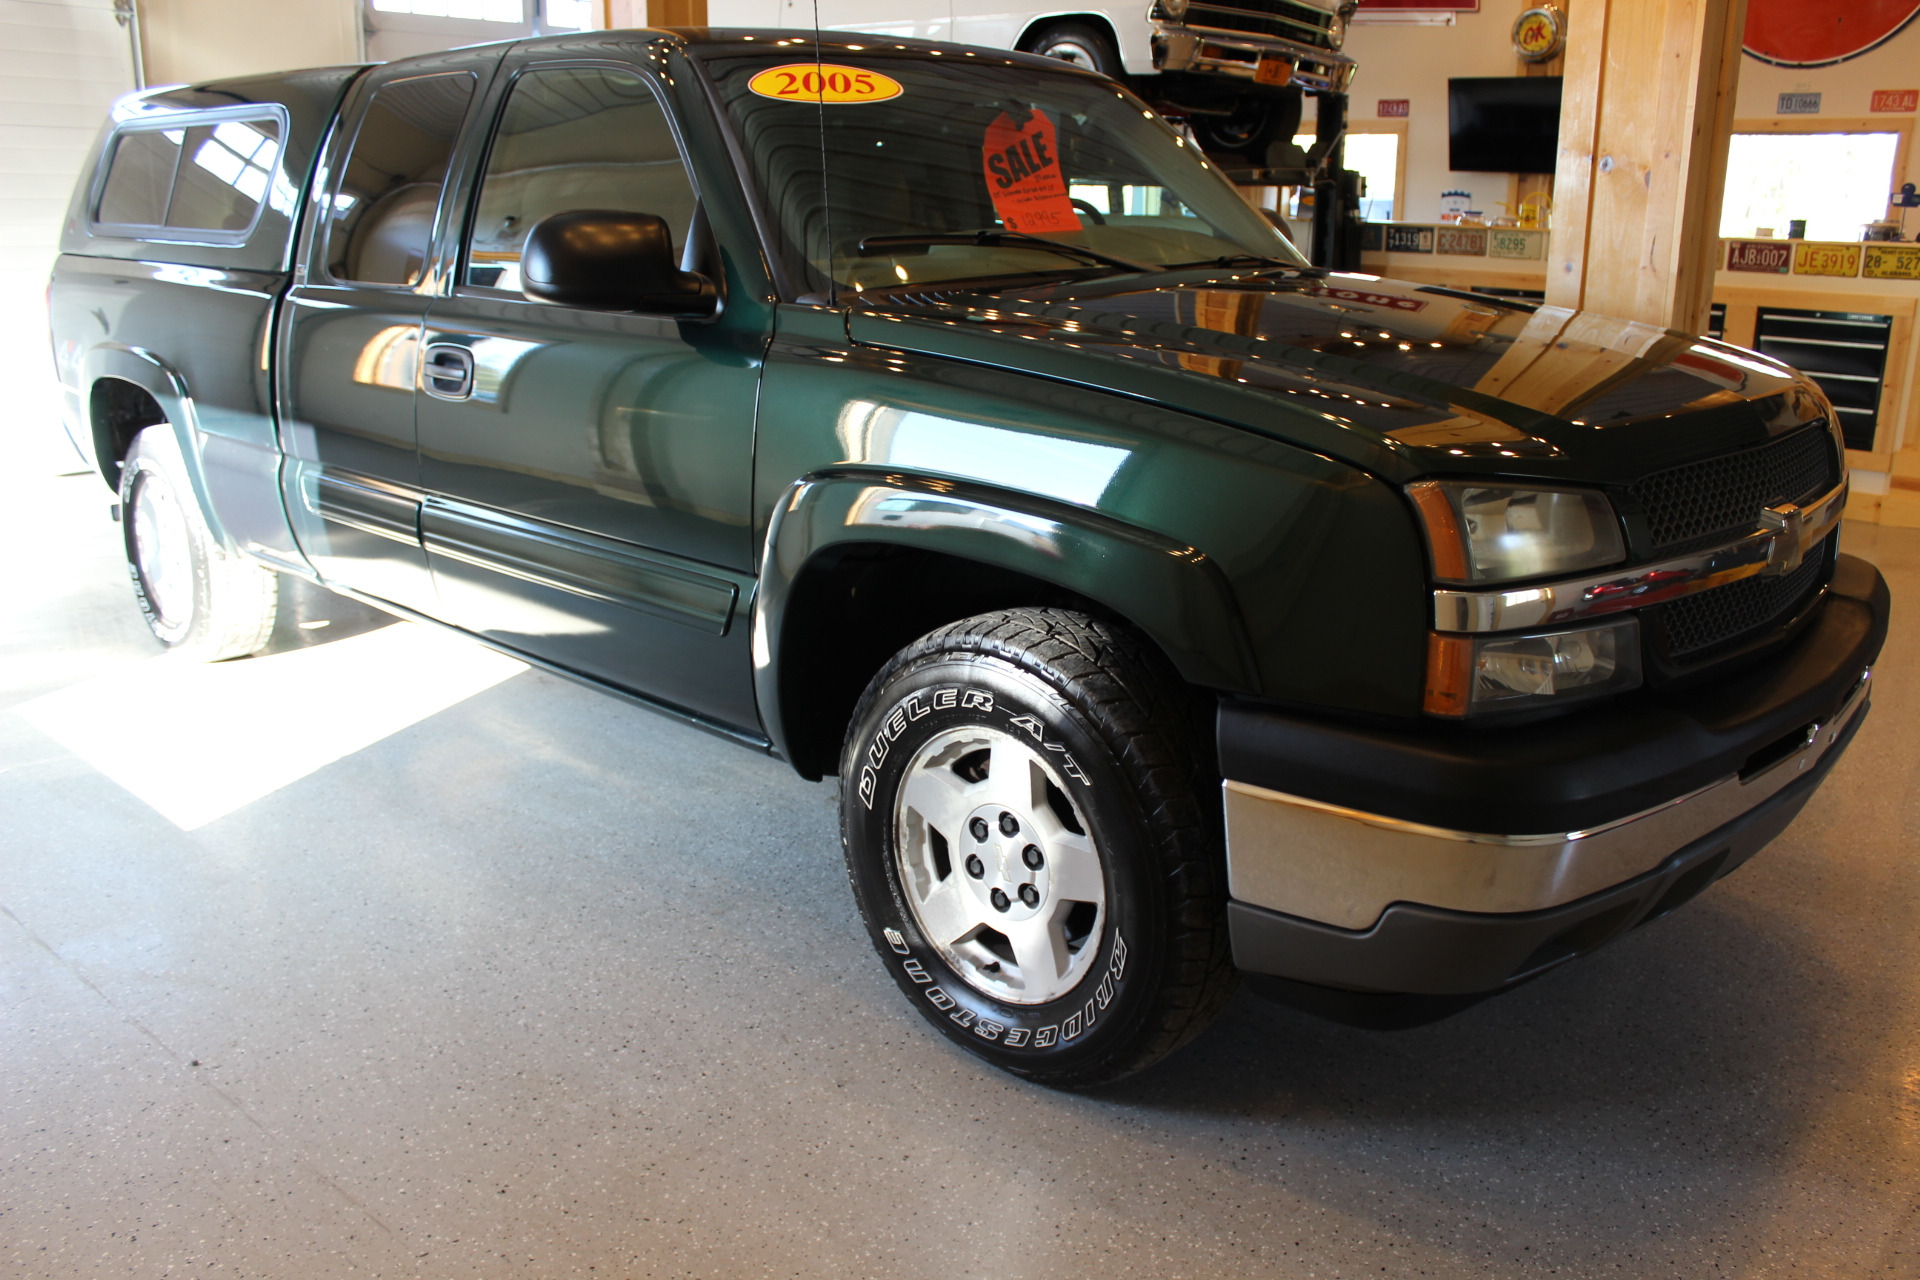 2005 chevrolet silverado 1500 ls biscayne auto sales pre owned dealership ontario ny. Black Bedroom Furniture Sets. Home Design Ideas